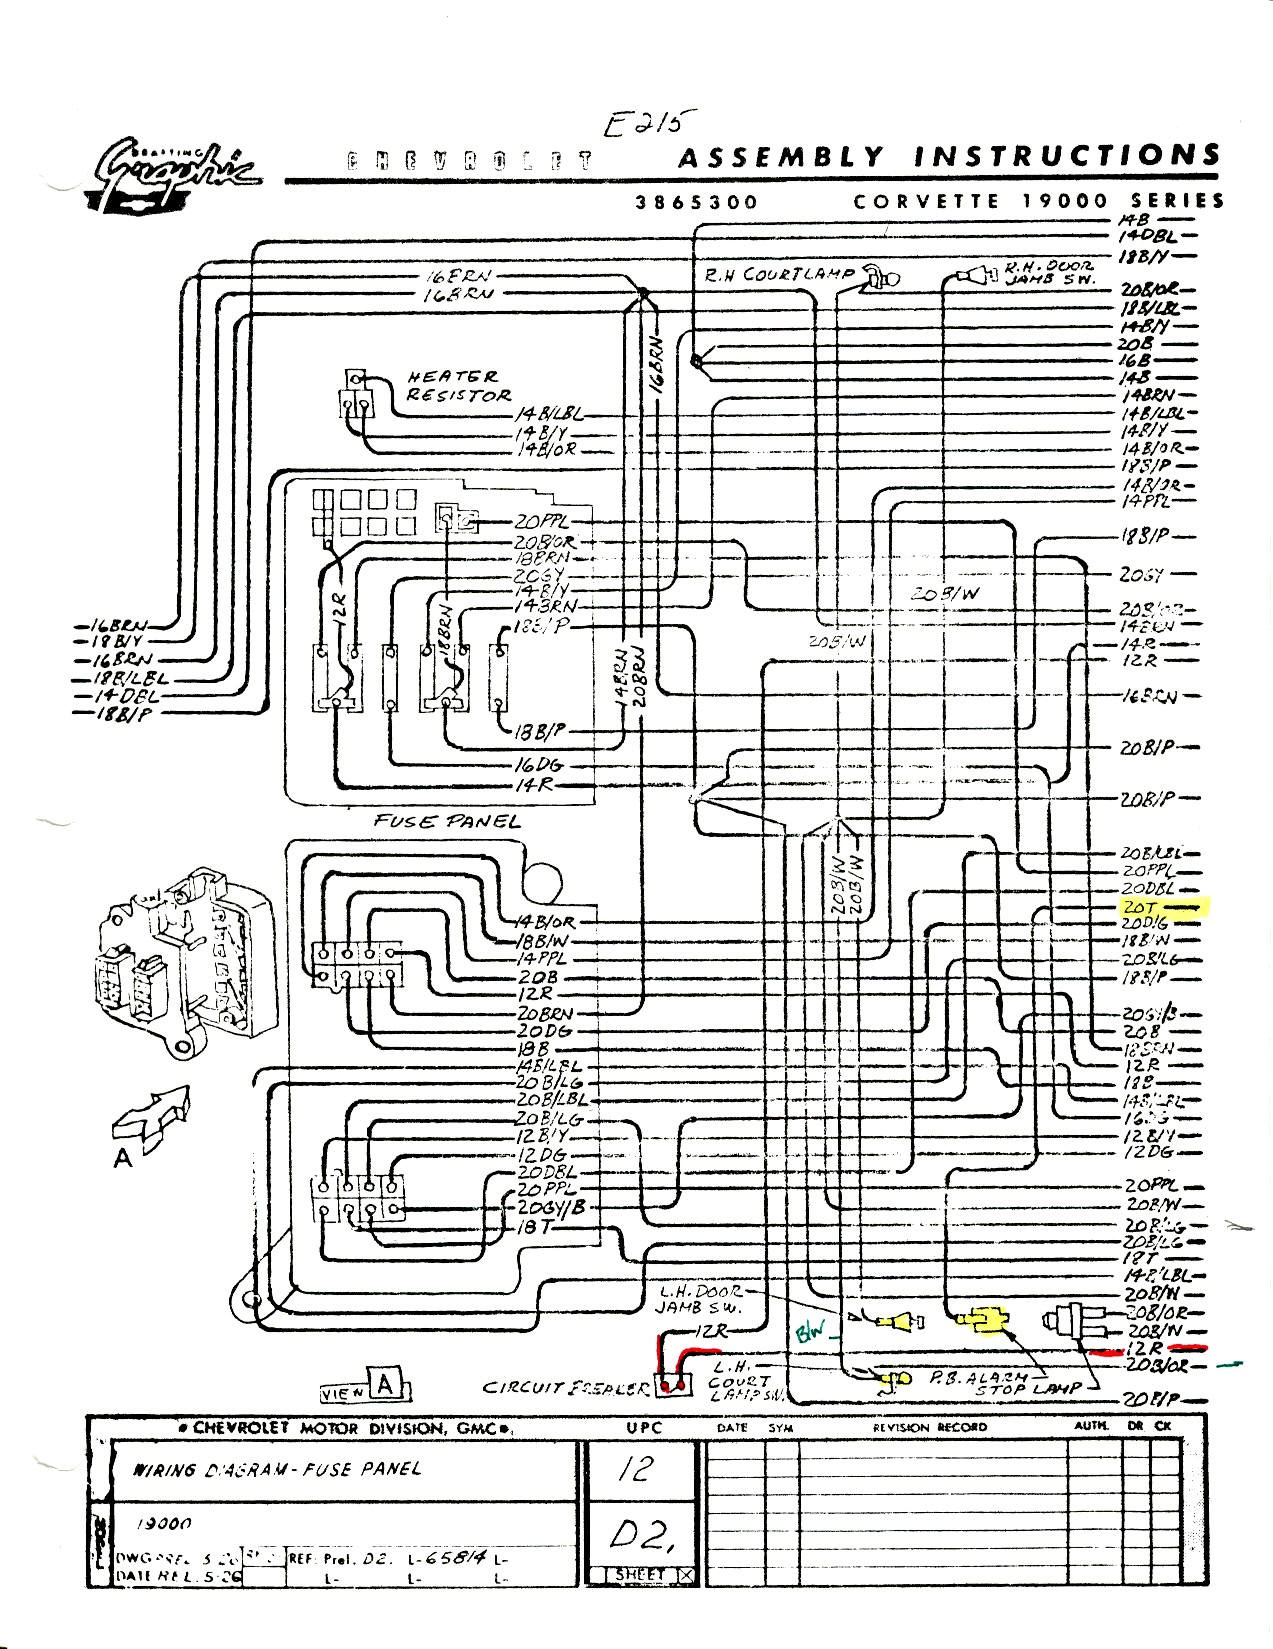 Fantastic Whelen 295hfsa1 Wiring Diagram Crest - Everything You Need ...